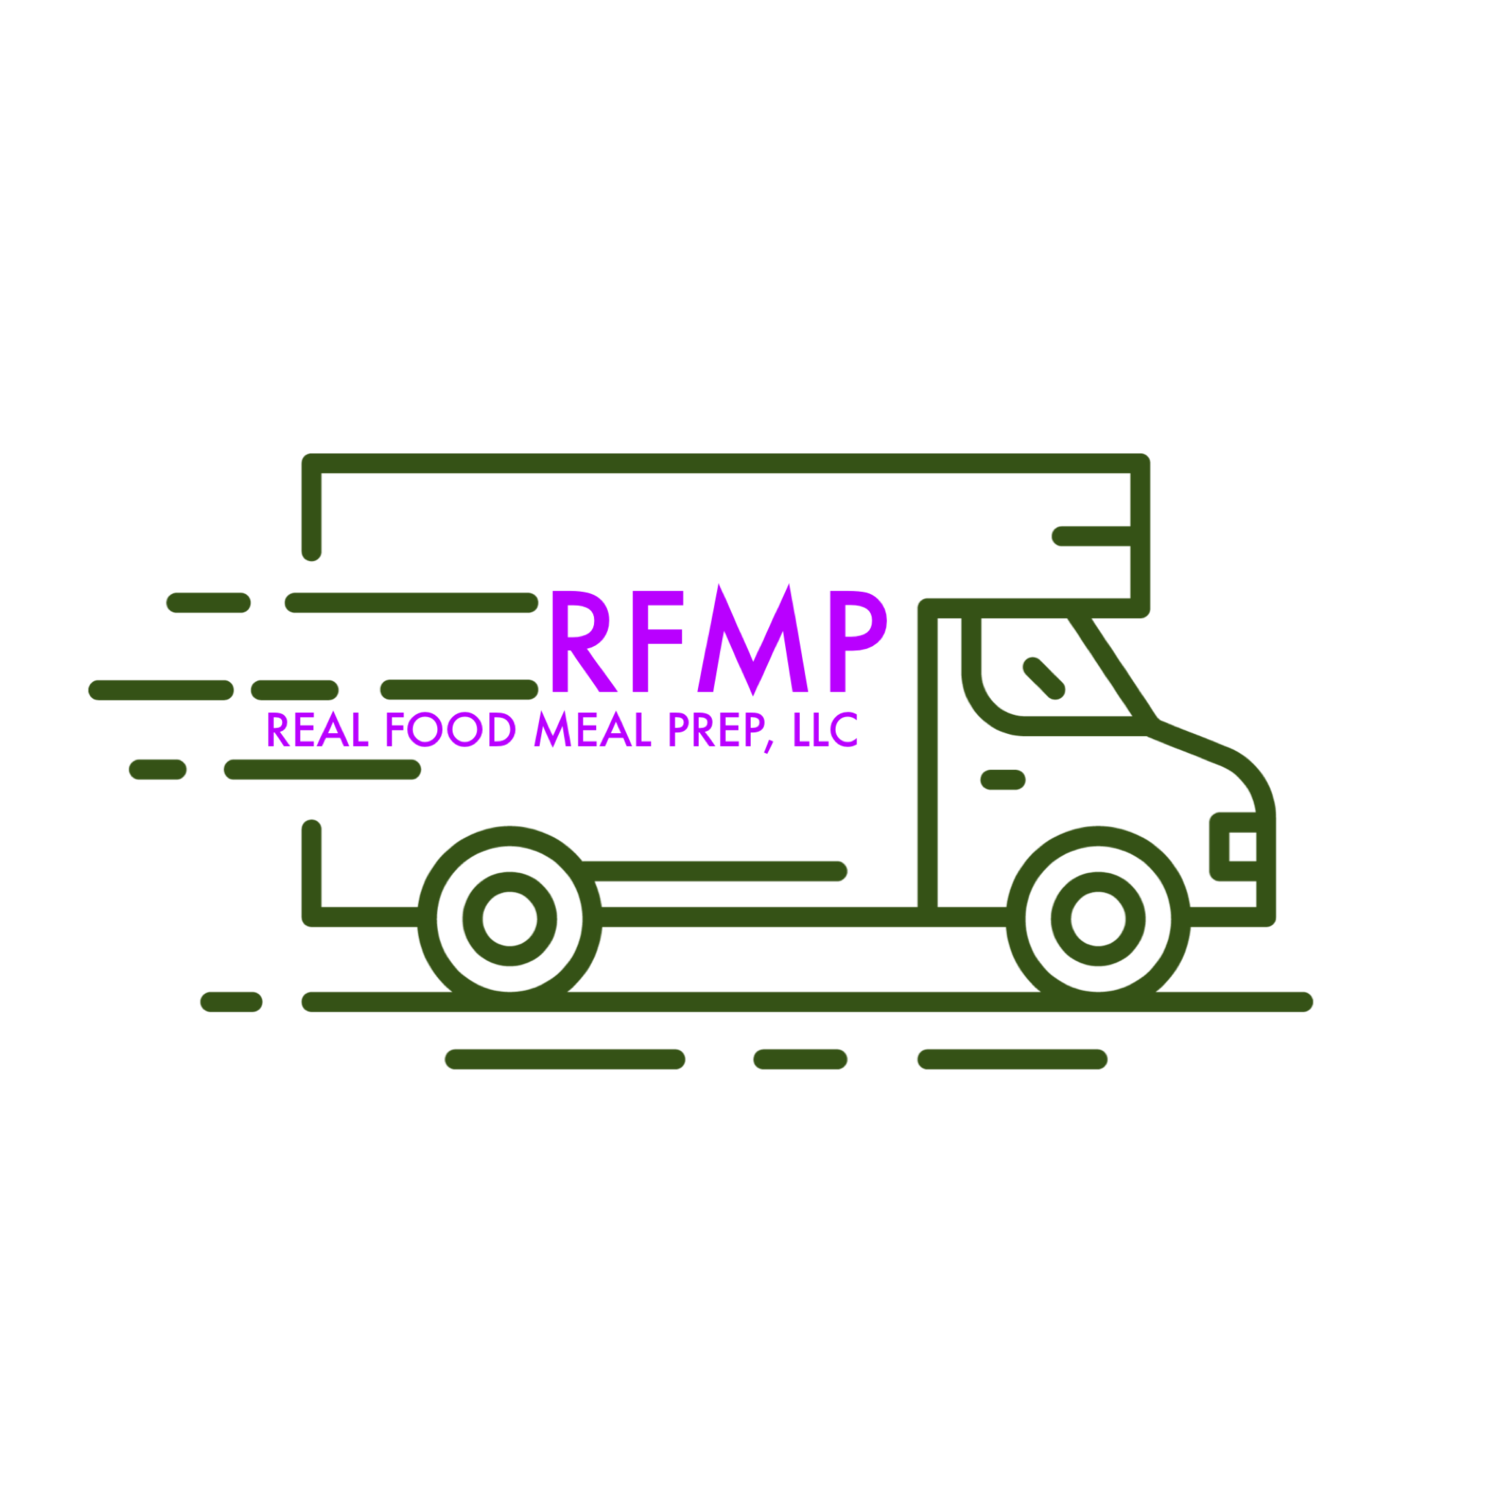 Real Food Meal Prep, LLC